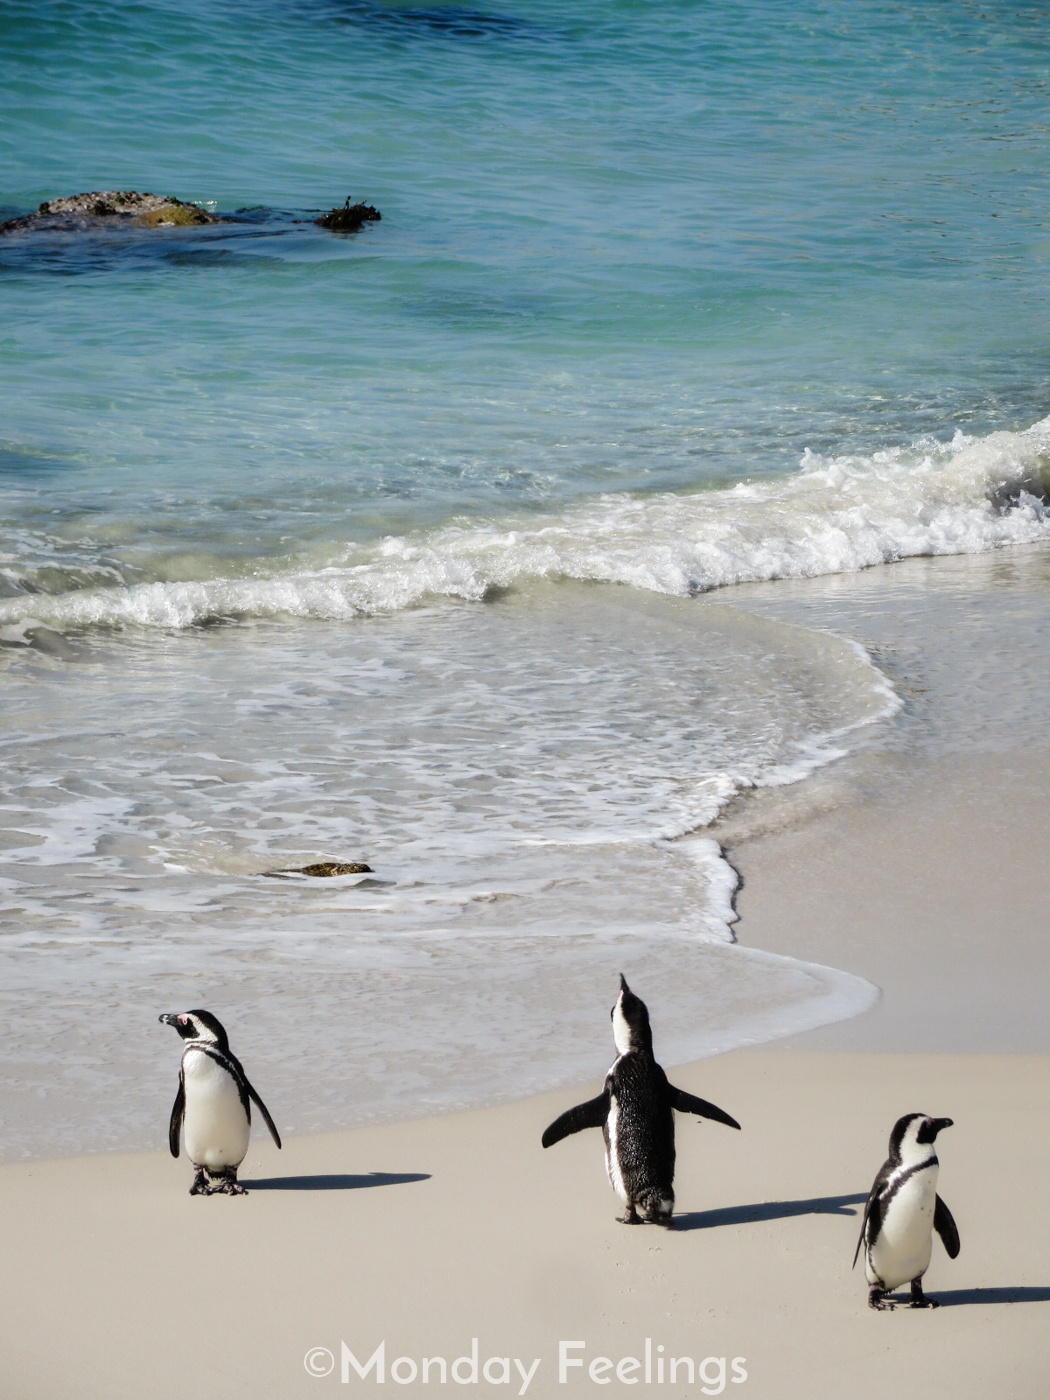 Visiting Boulders Beach, one of the unmissable things you should do in South Africa